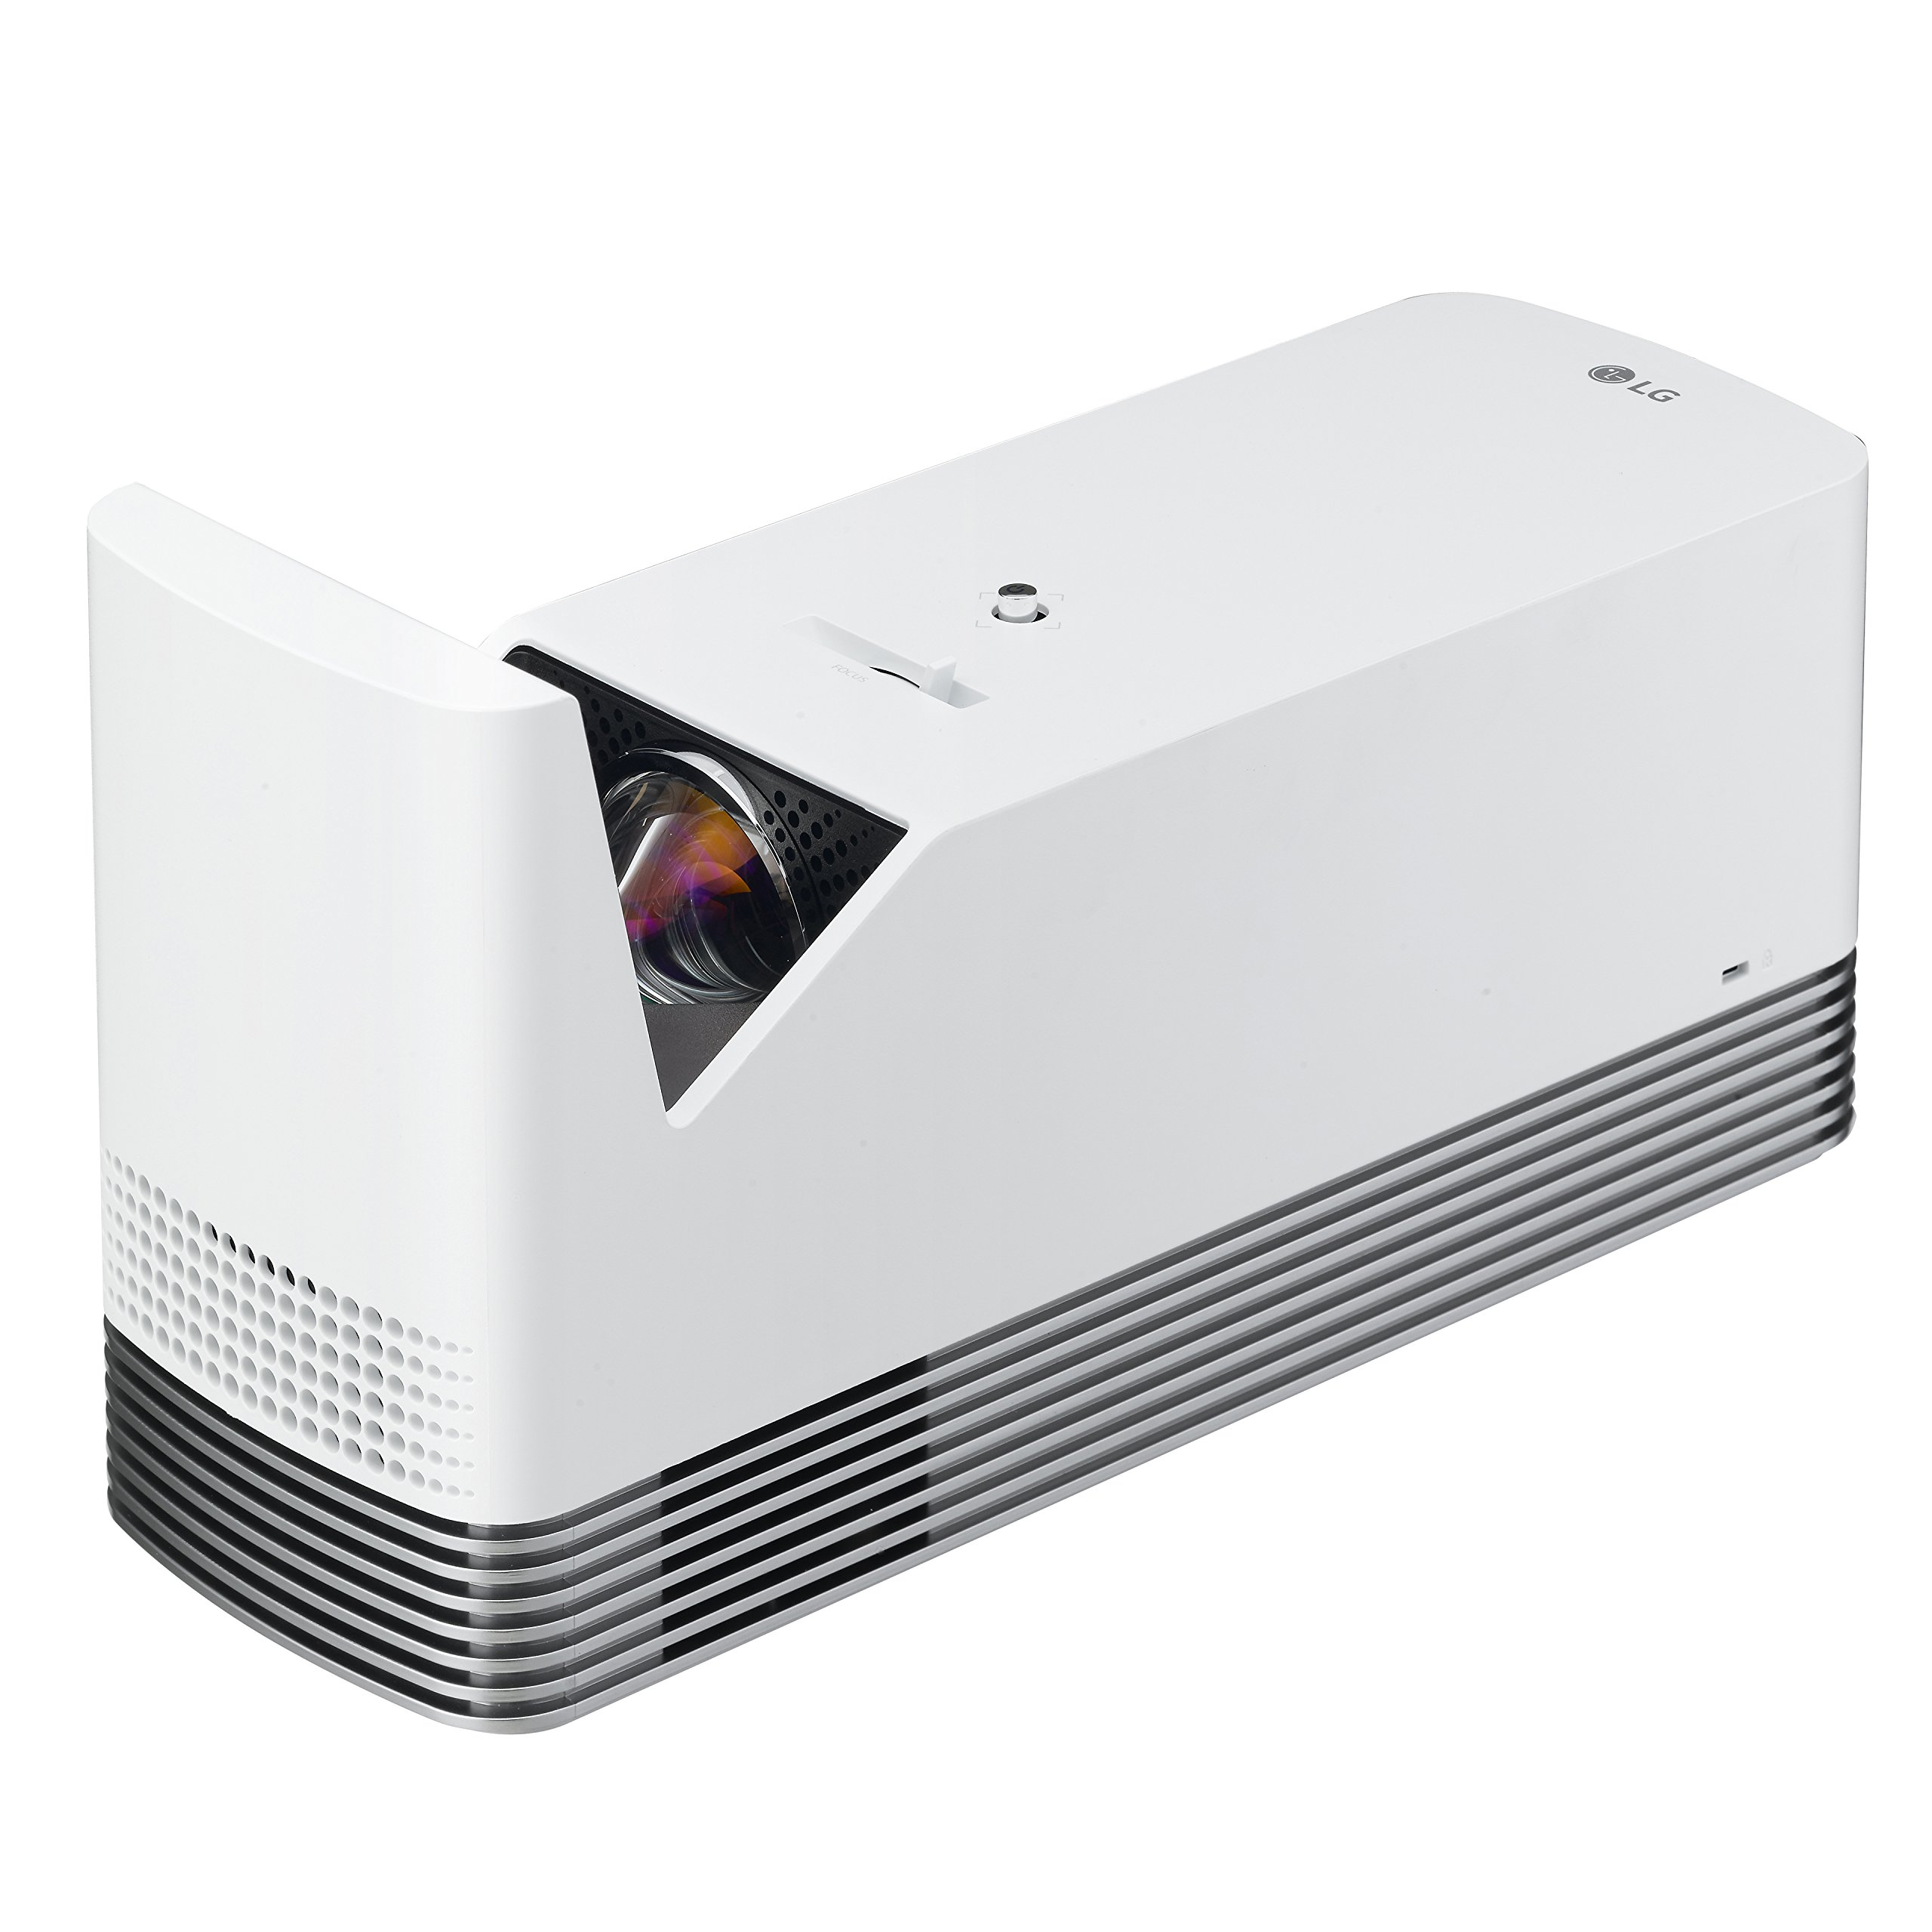 LG HF85JA Ultra Short Throw Laser Smart Home Theater Projector (2017 Model - Class 1 Laser Product)